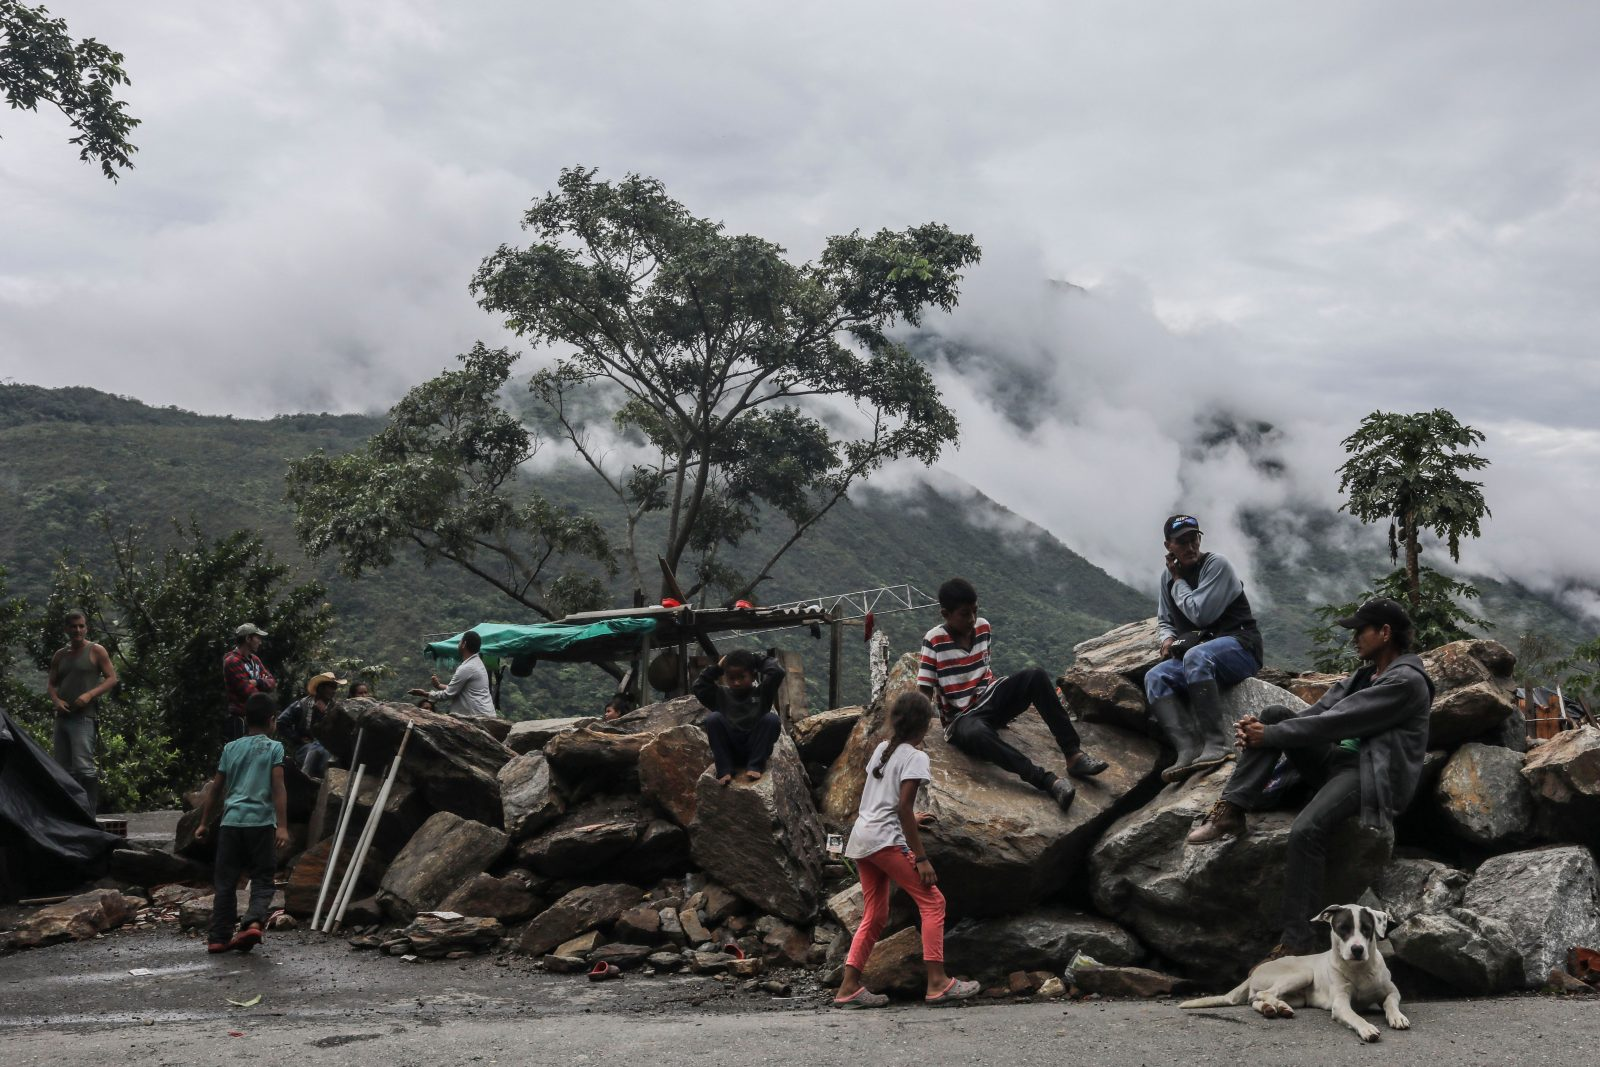 Families evacuated from their homes near EPM's Hidroituango dam, which was financed by Canada's export bank, in May 2018. Photo byJoaquin Sarmiento/AFP/Getty Images.